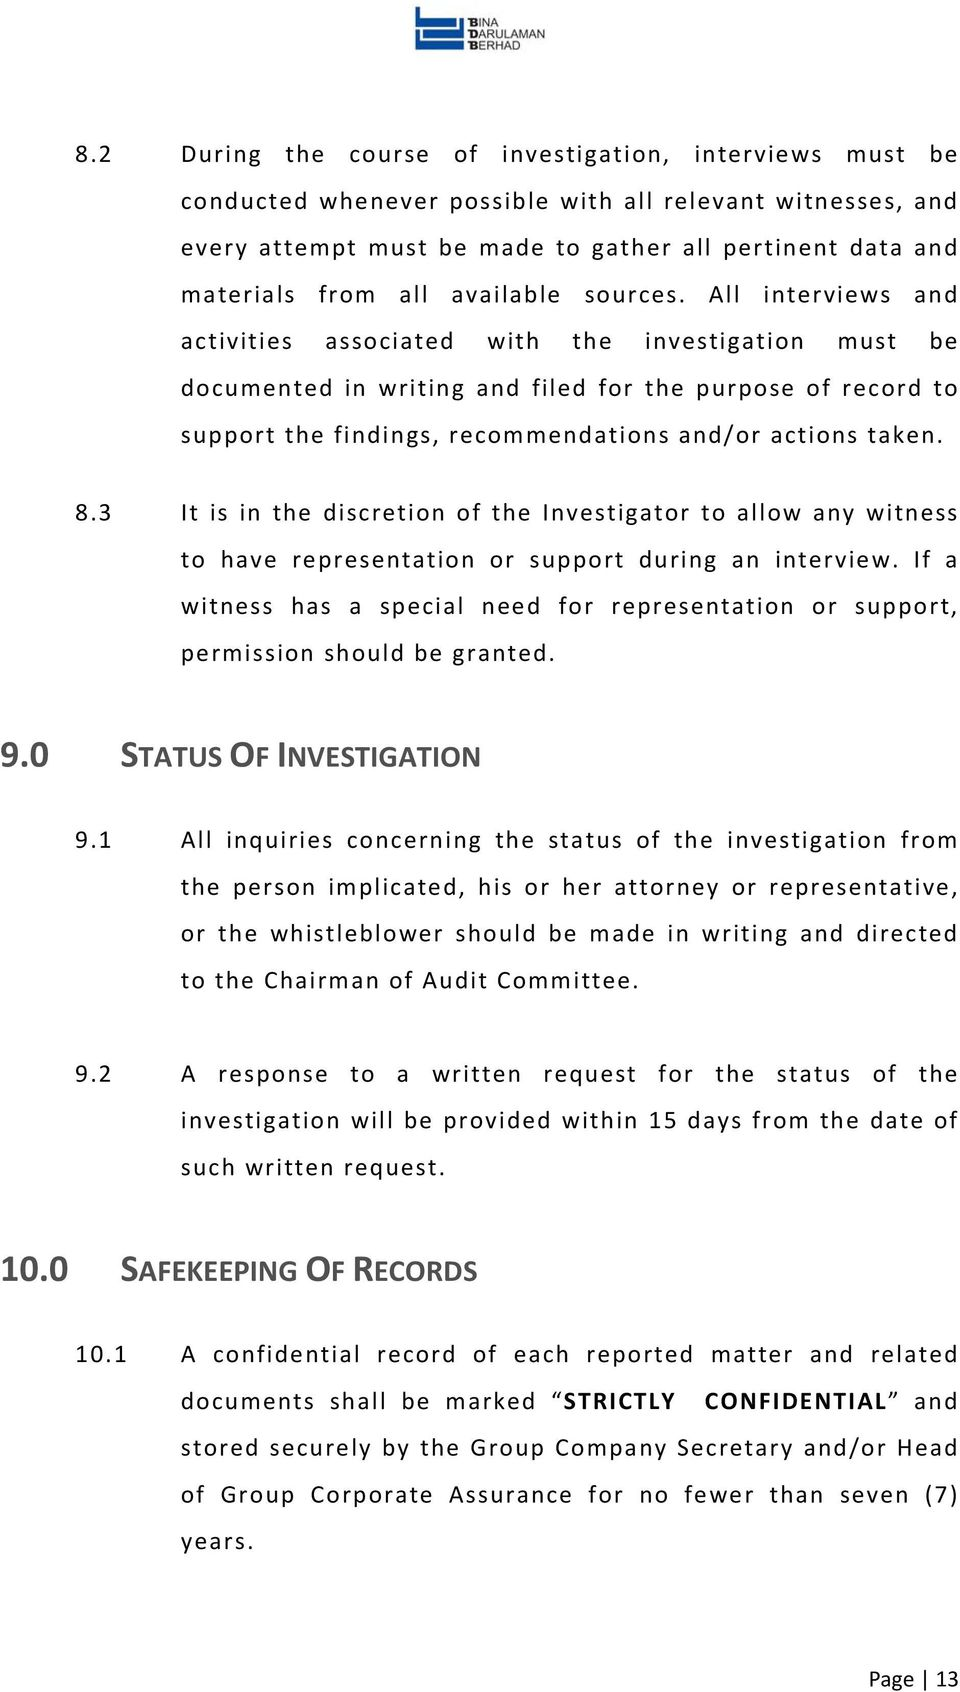 All interviews and activities associated with the investigation must be documented in writing and filed for the purpose of record to support the findings, recommendations and/or actions taken. 8.